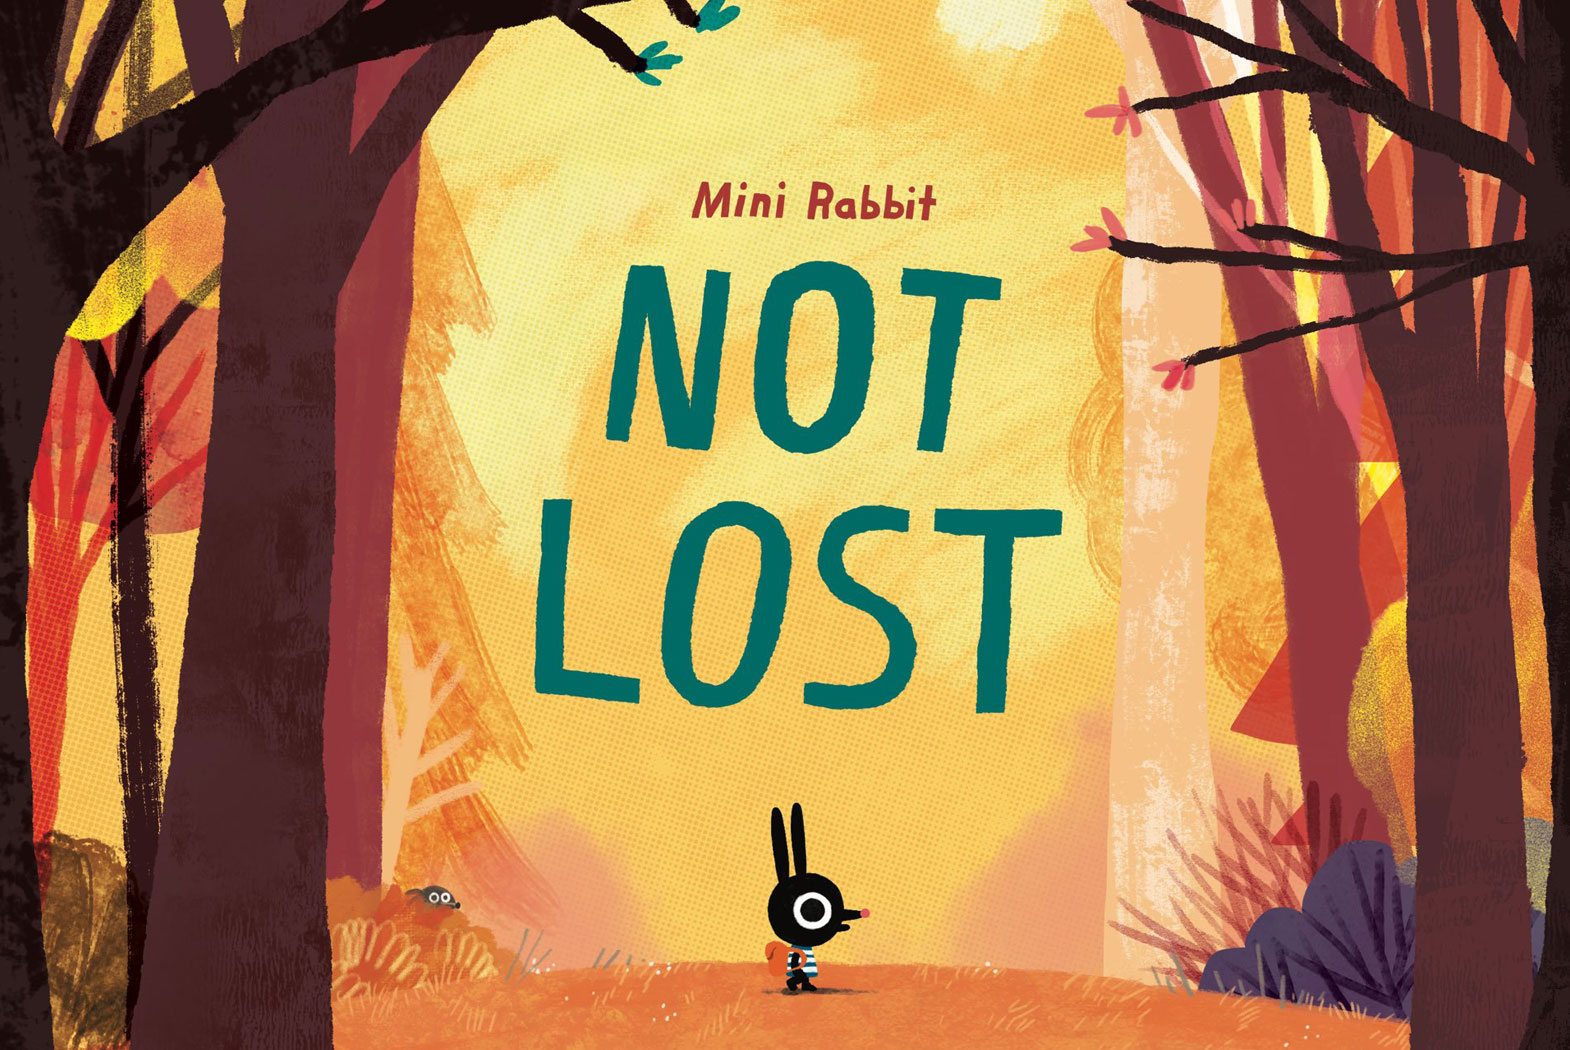 Mini Rabbit Not Lost - John Bond